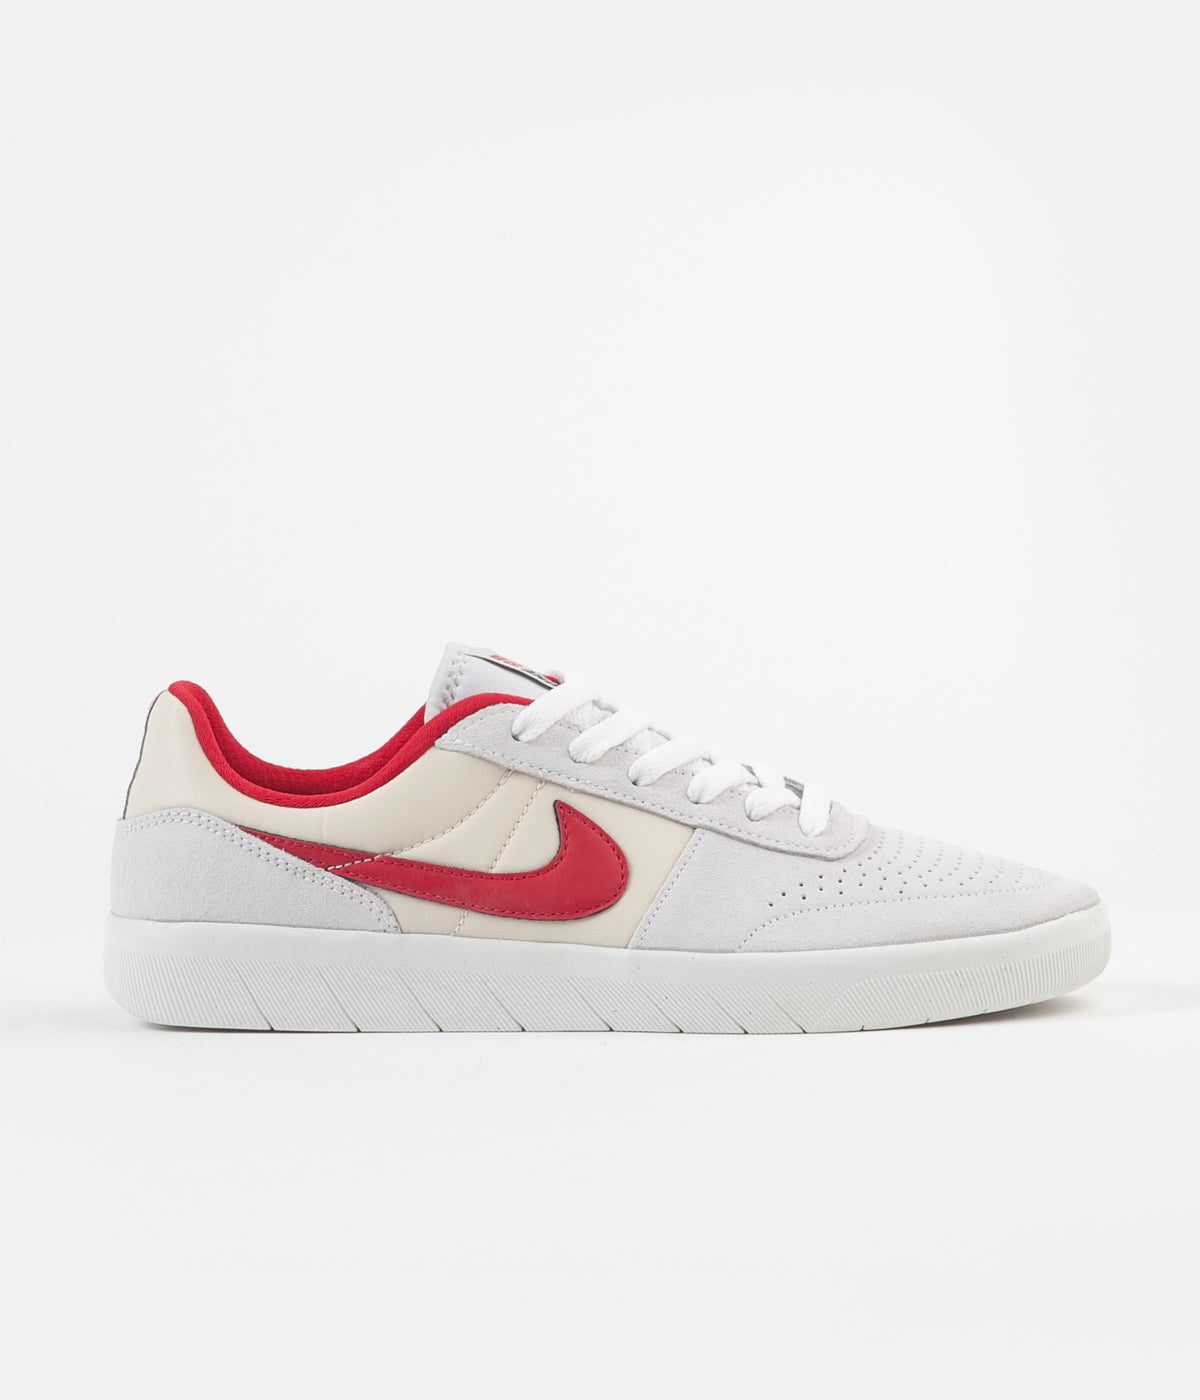 Nike SB Team Classic Shoes - Photon Dust / University Red - Light Cream